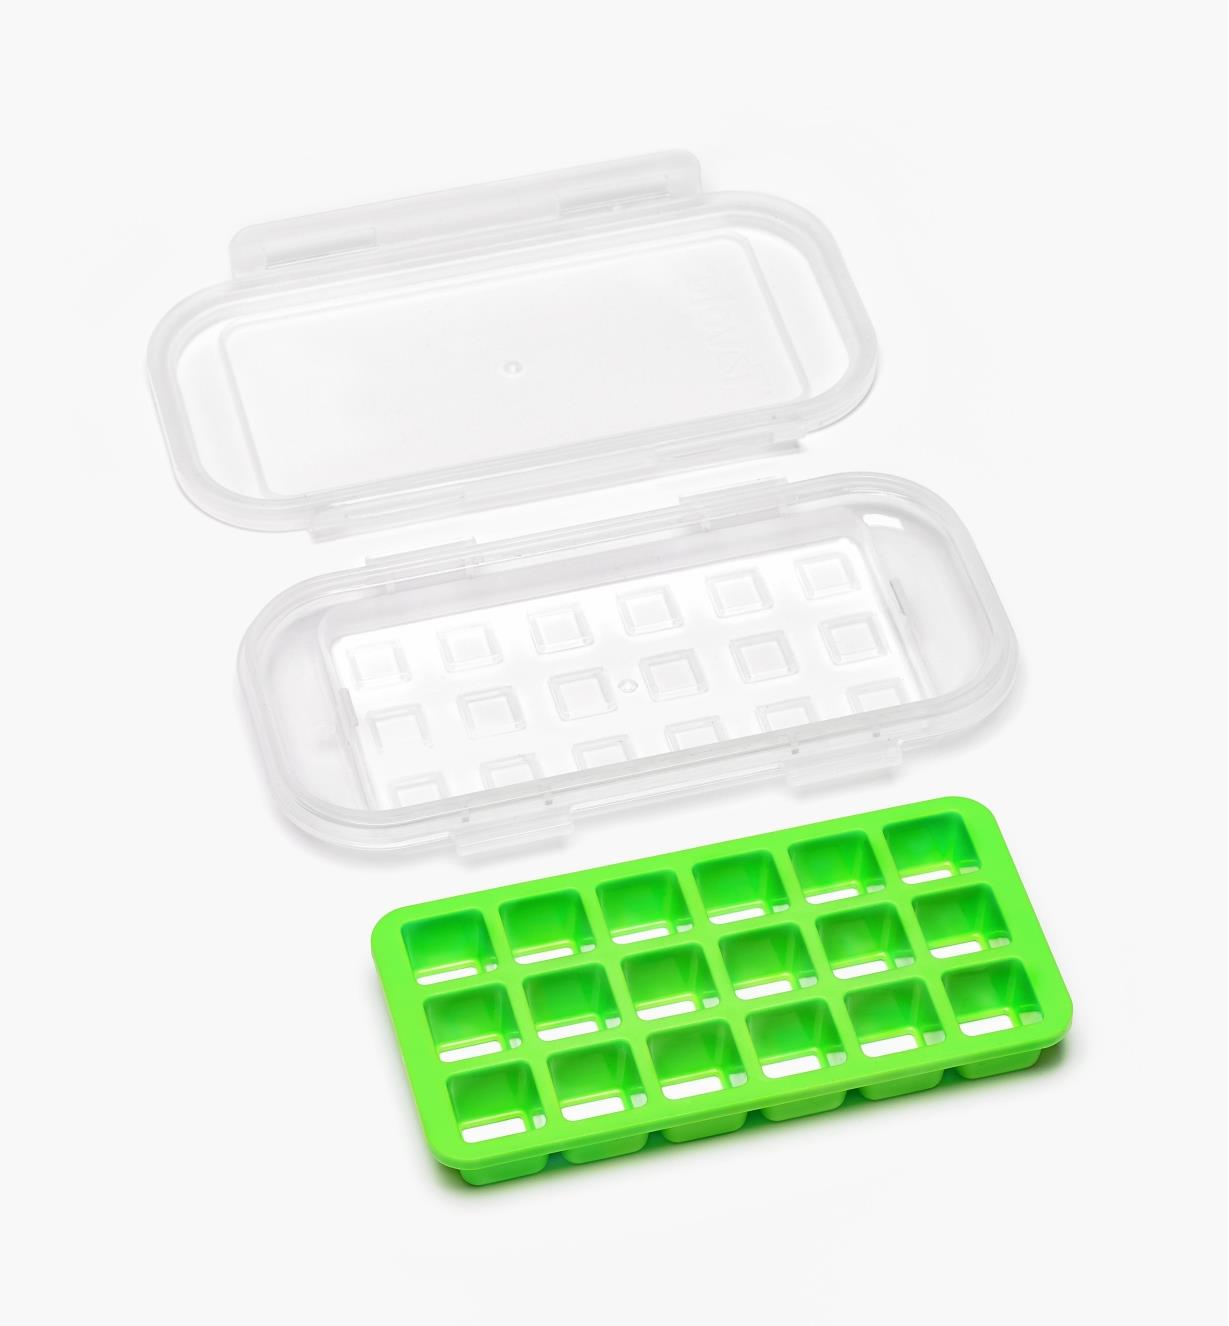 HK325 - Garlic Freezer Tray